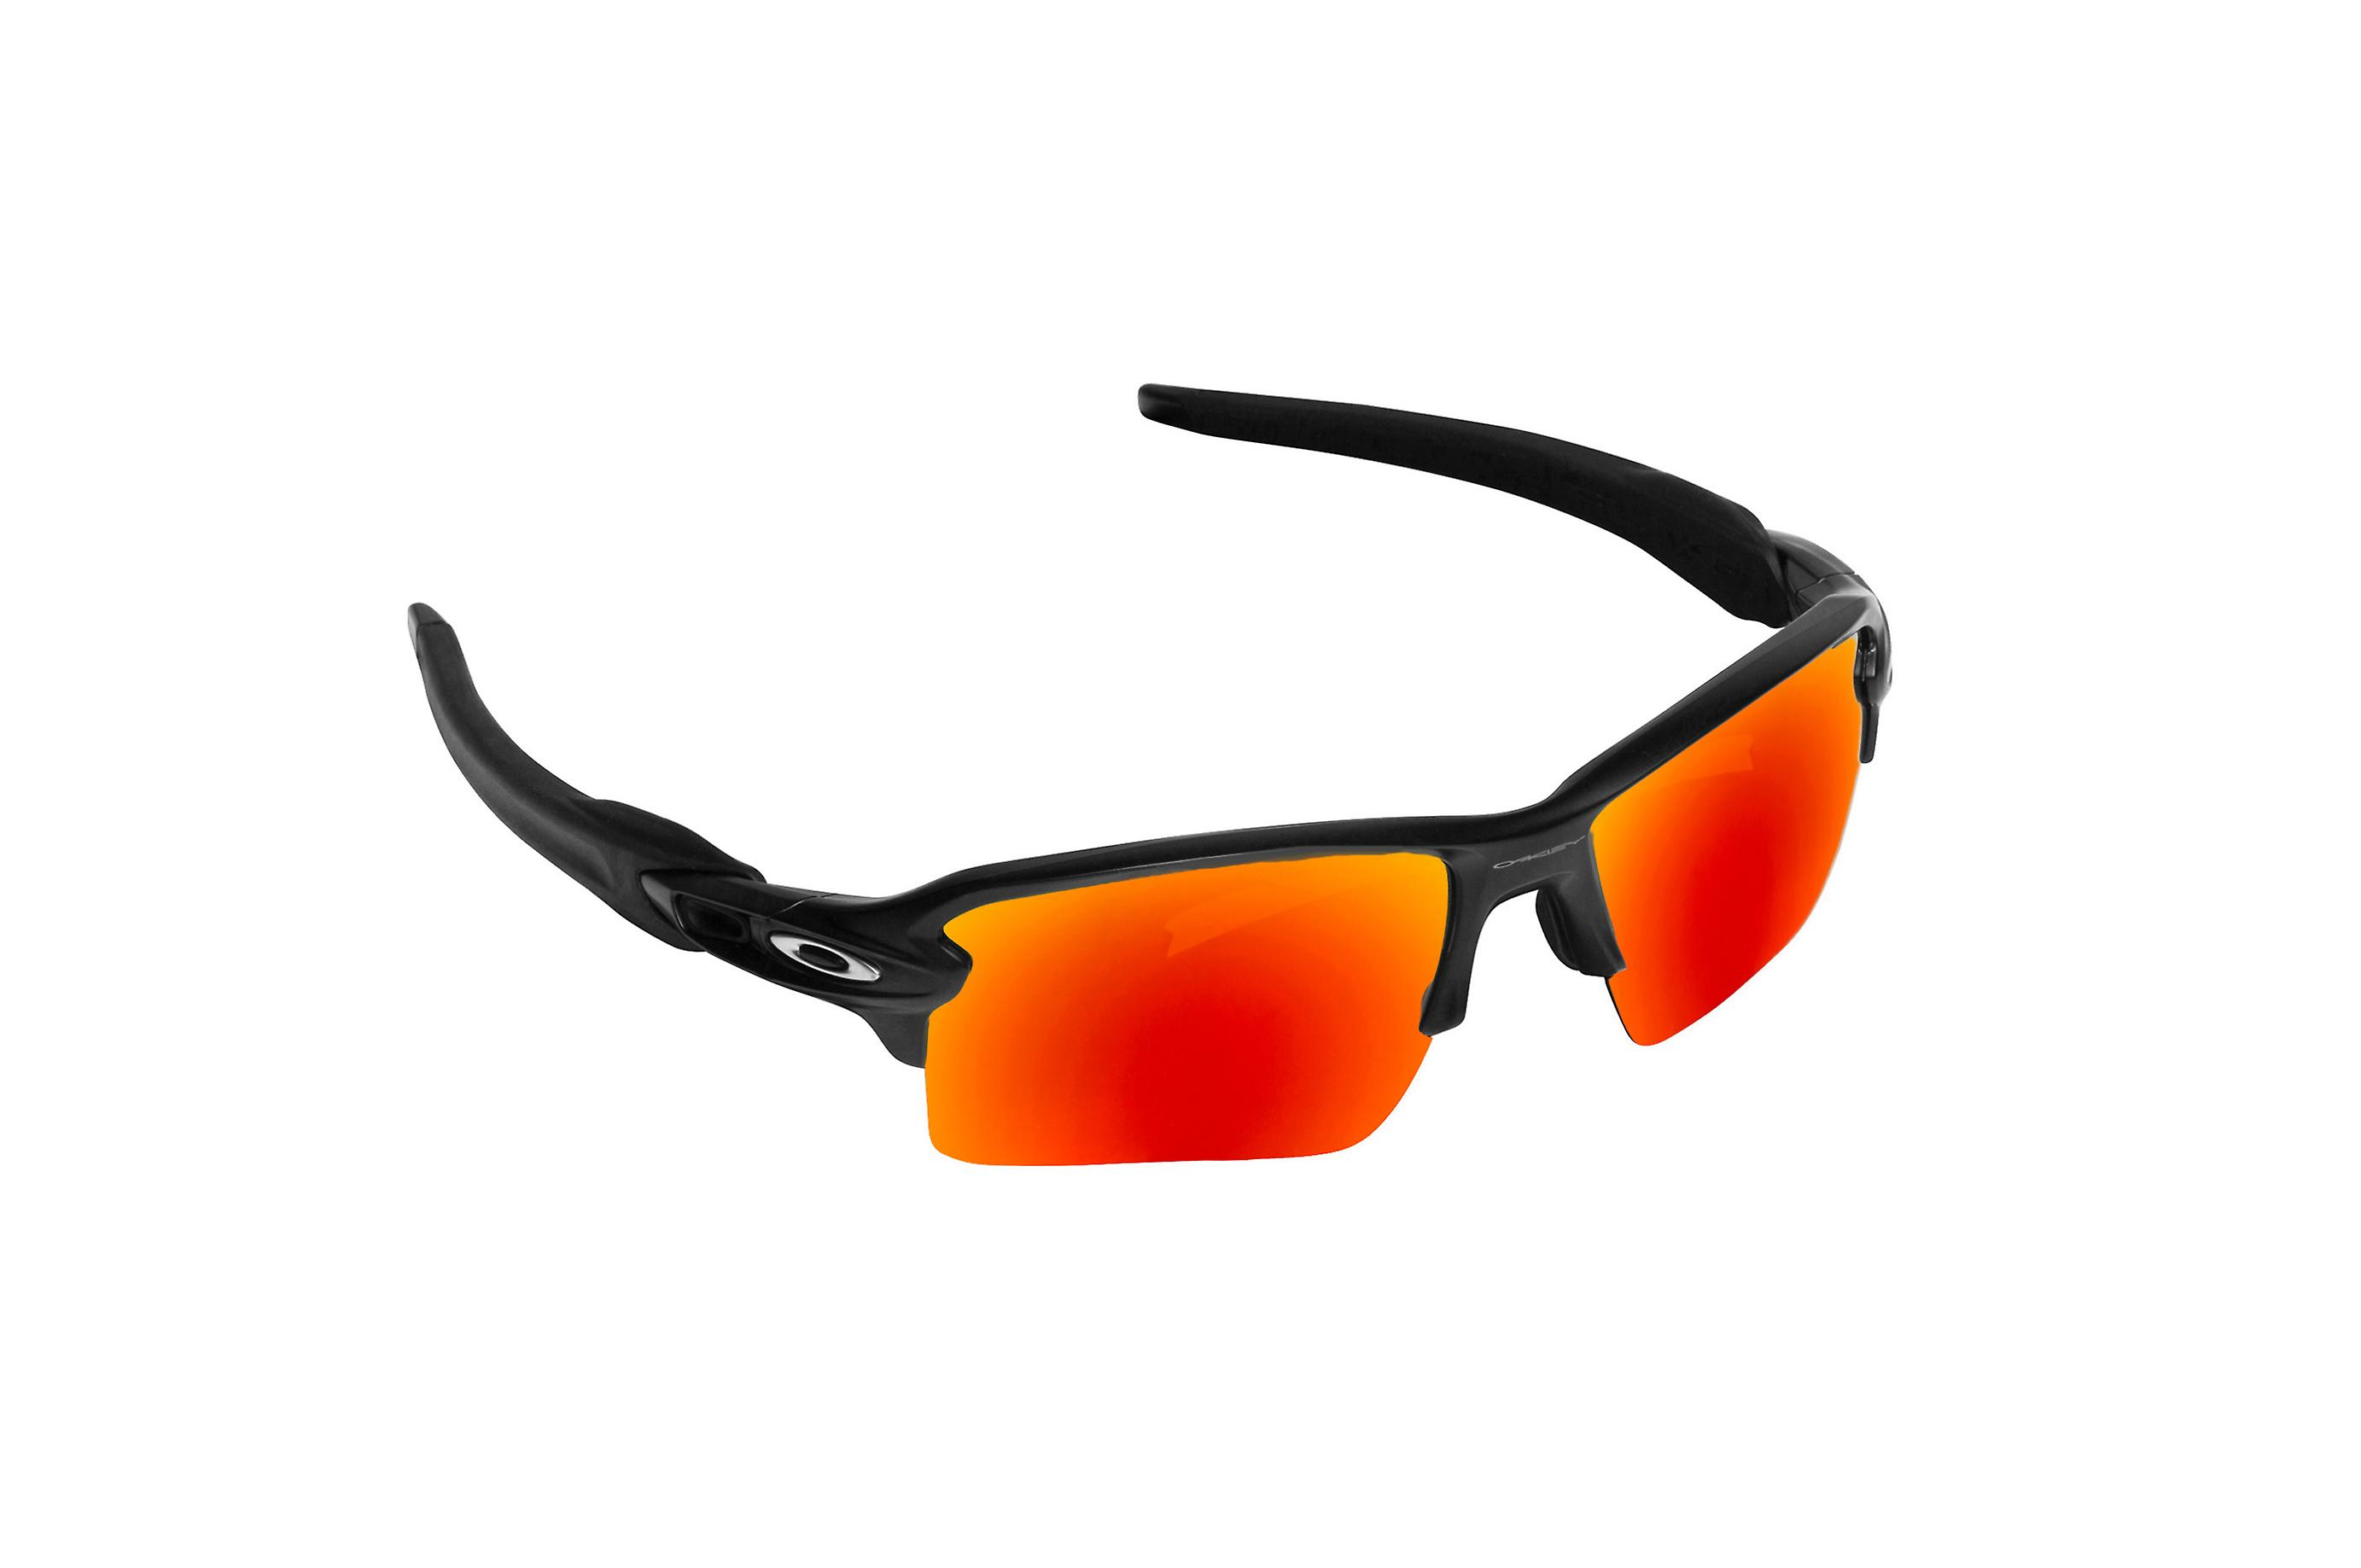 dff8674b59 FLAK 2.0 XL Replacement Lenses Red Mirror by SEEK fits OAKLEY Sunglasses